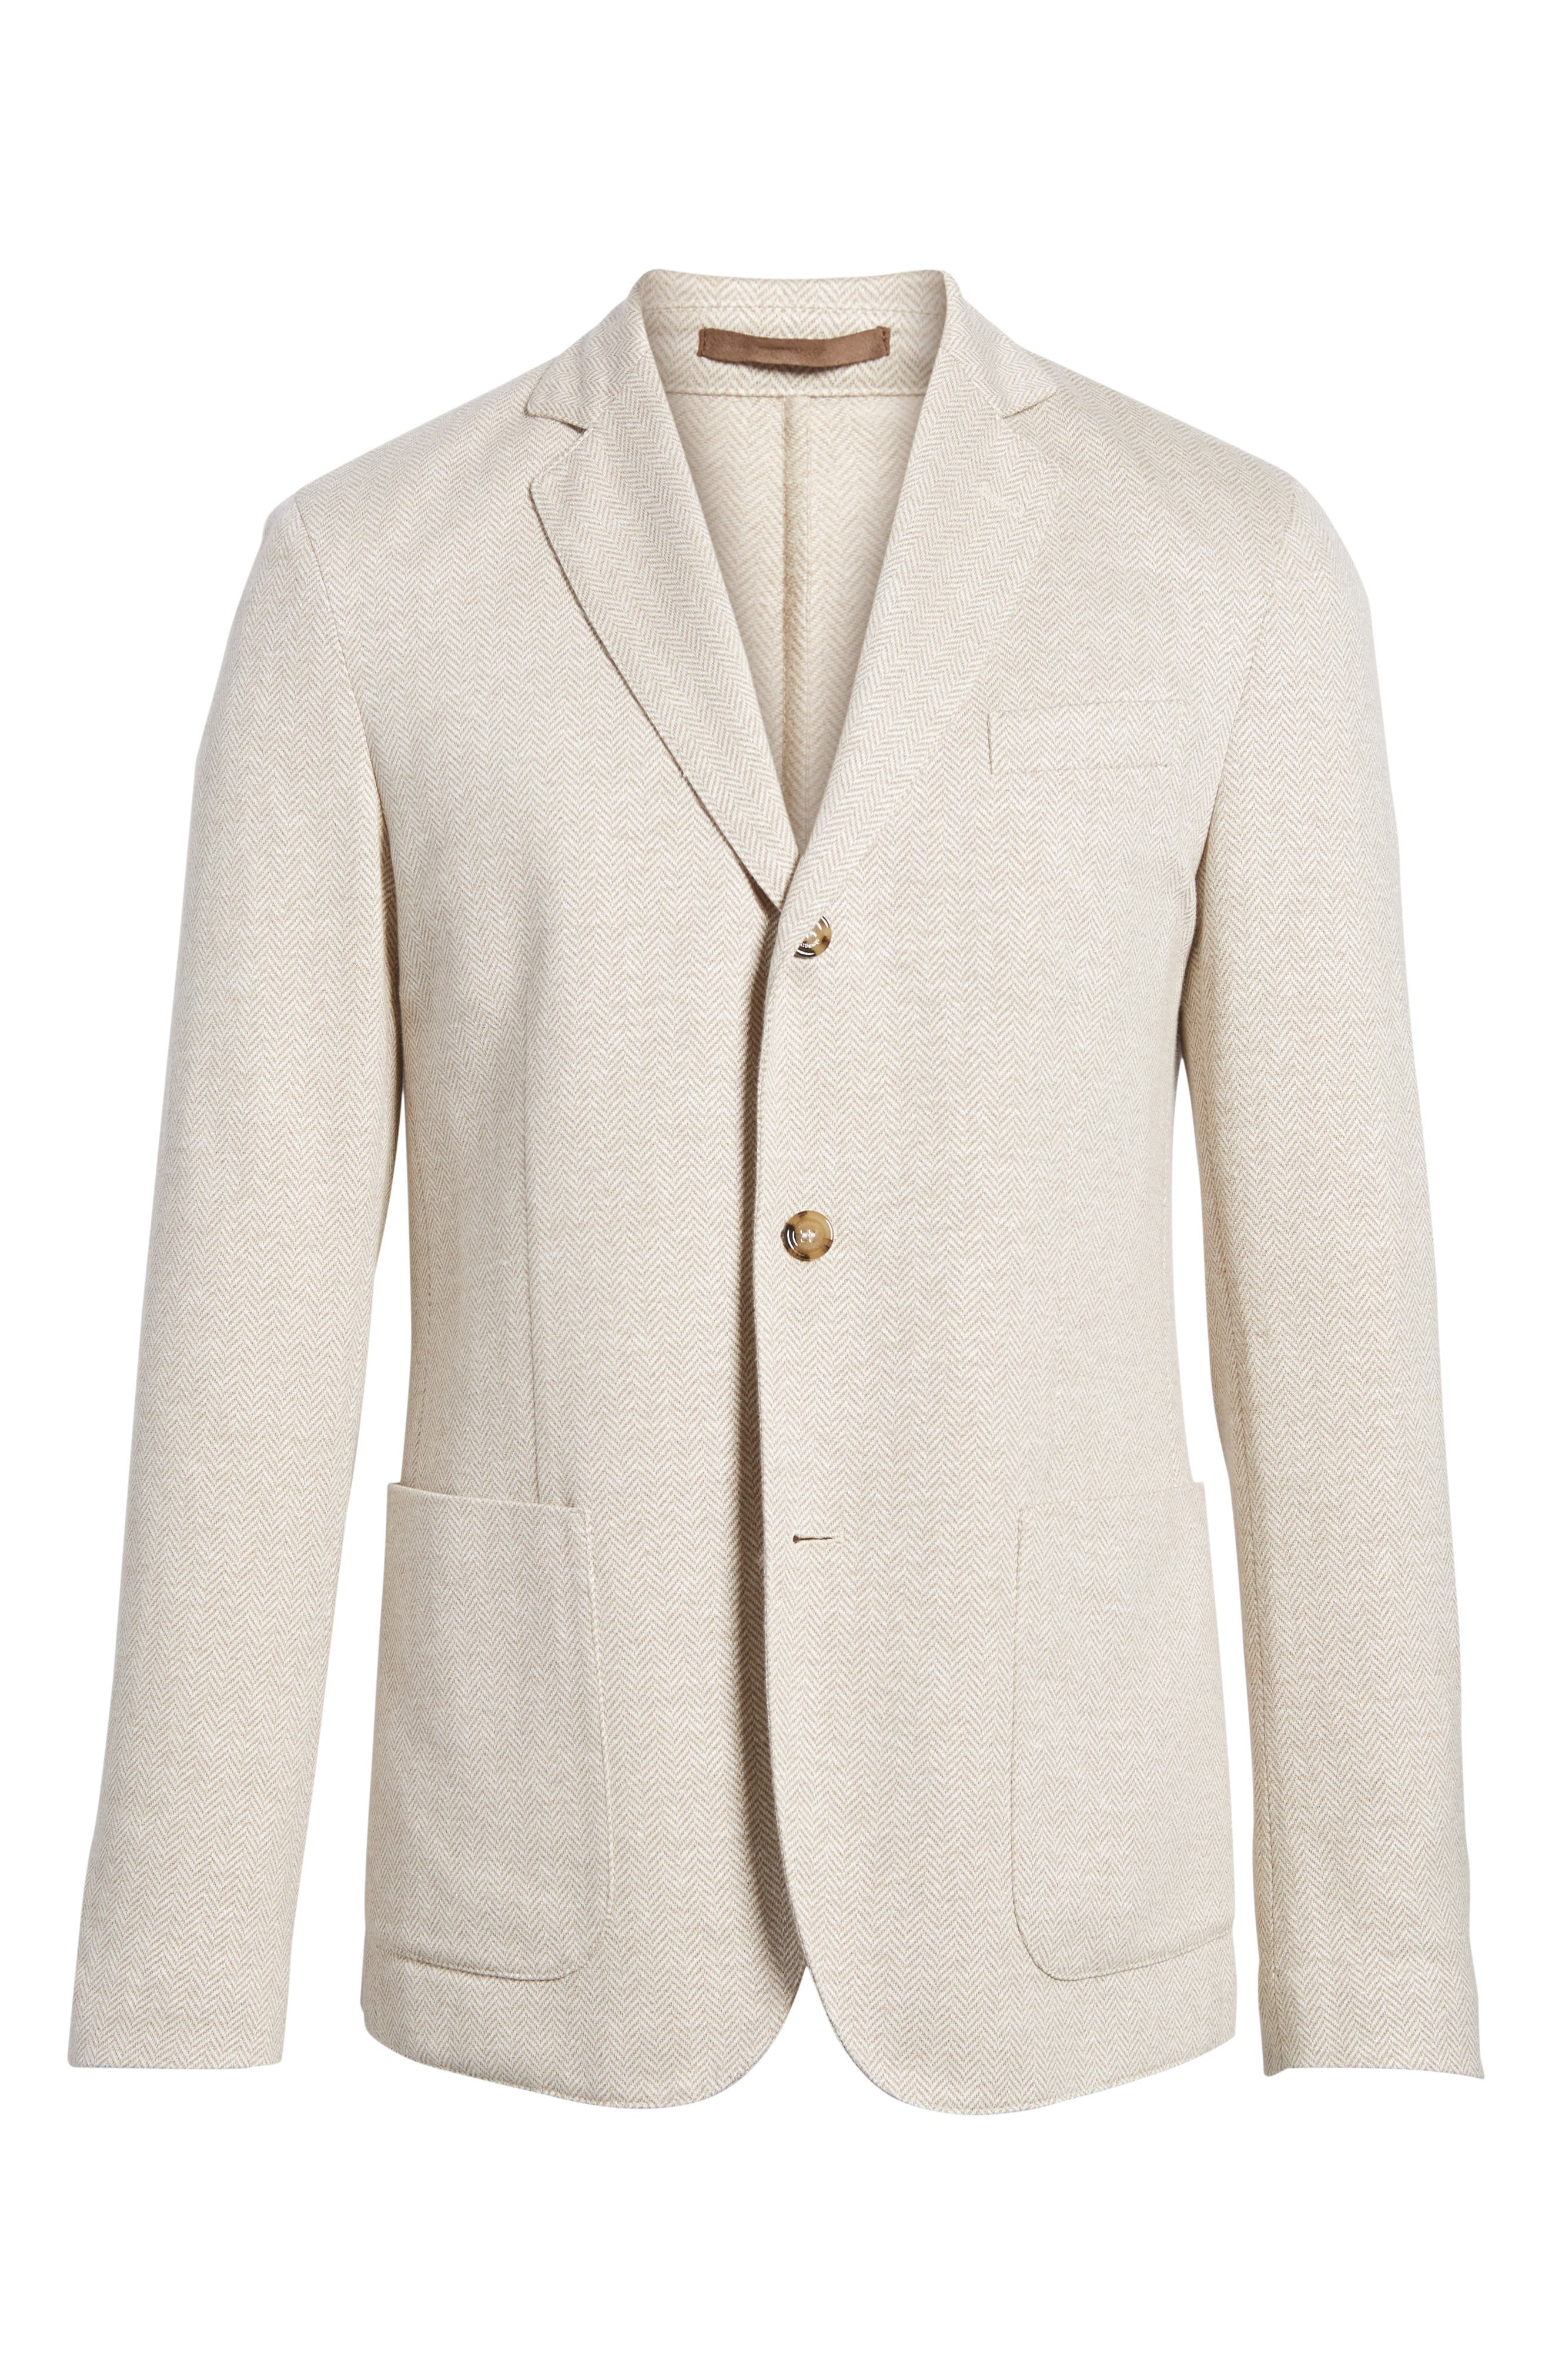 Trim Fit Herringbone Linen & Cotton Jacket,                             Alternate thumbnail 6, color,                             Sand